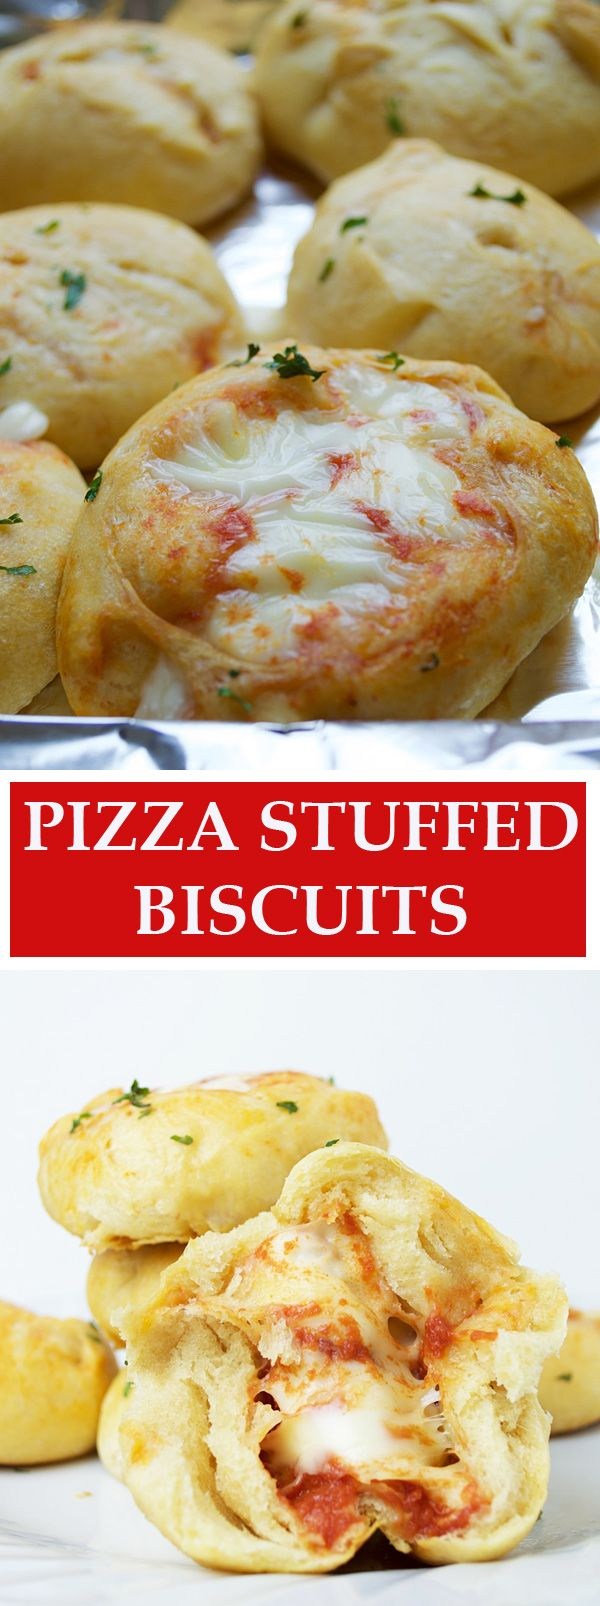 These pizza stuffed biscuits are filled with garlic-y tomato sauce and melty mozzarella cheese for mini pizza bites. Perfect for a snack, lunch, or dinner!